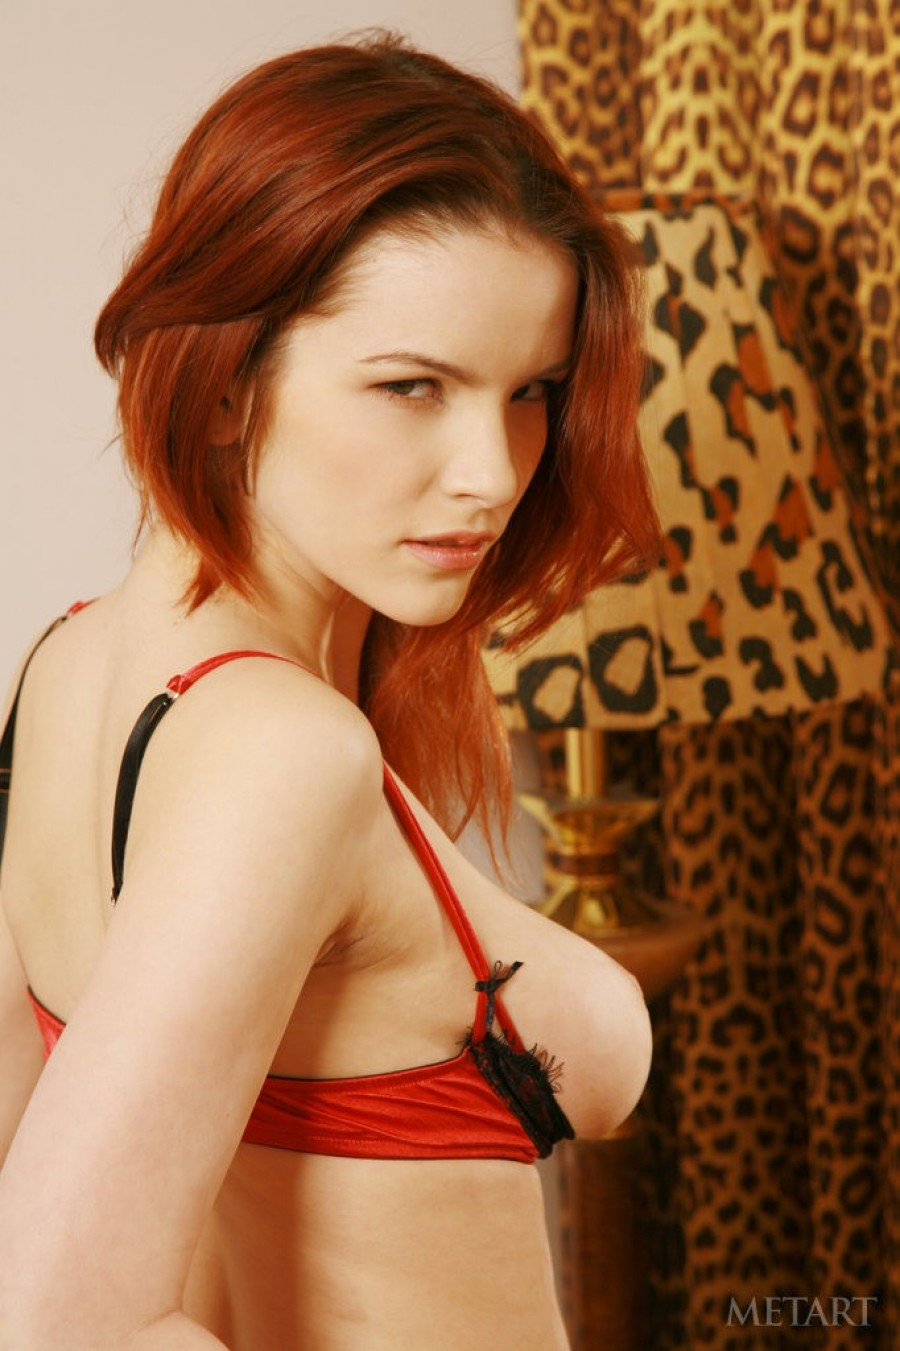 Wild solo session from adorable redhead